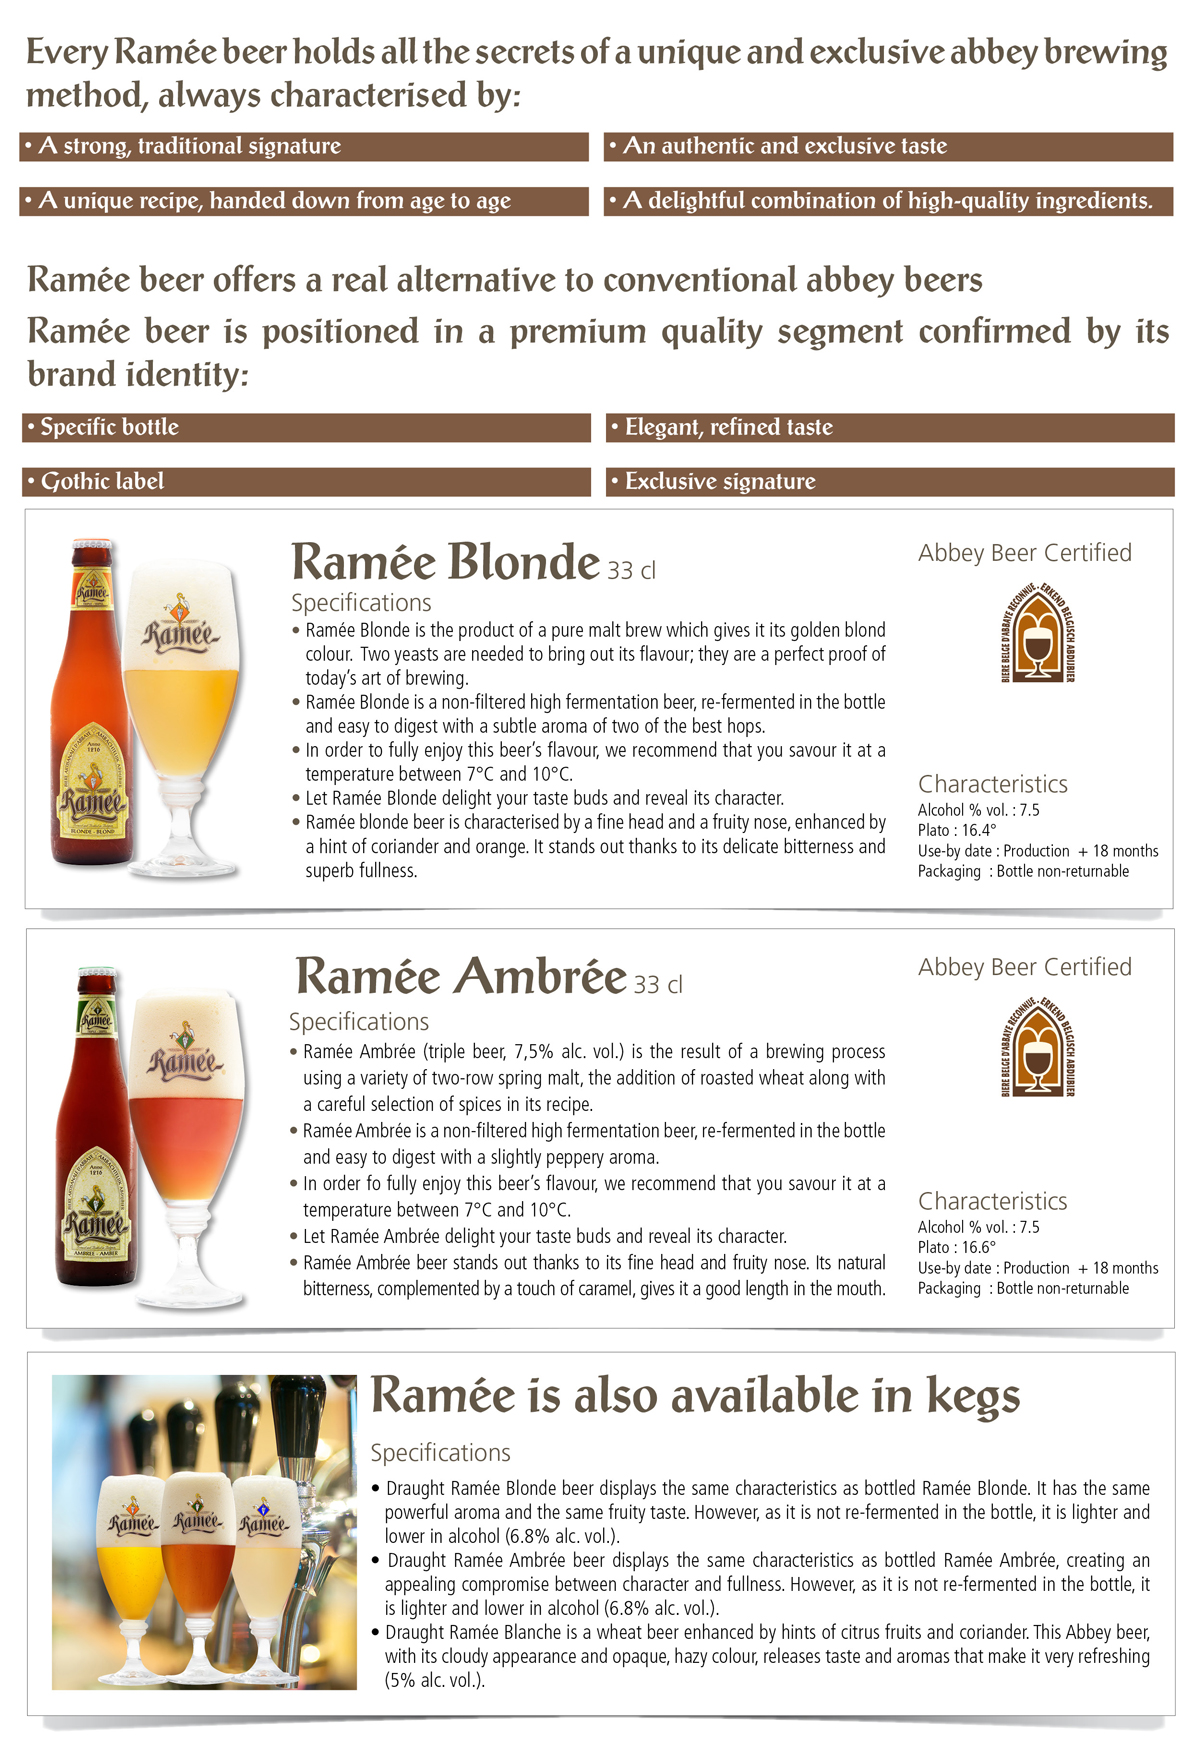 PAGE-BEER1